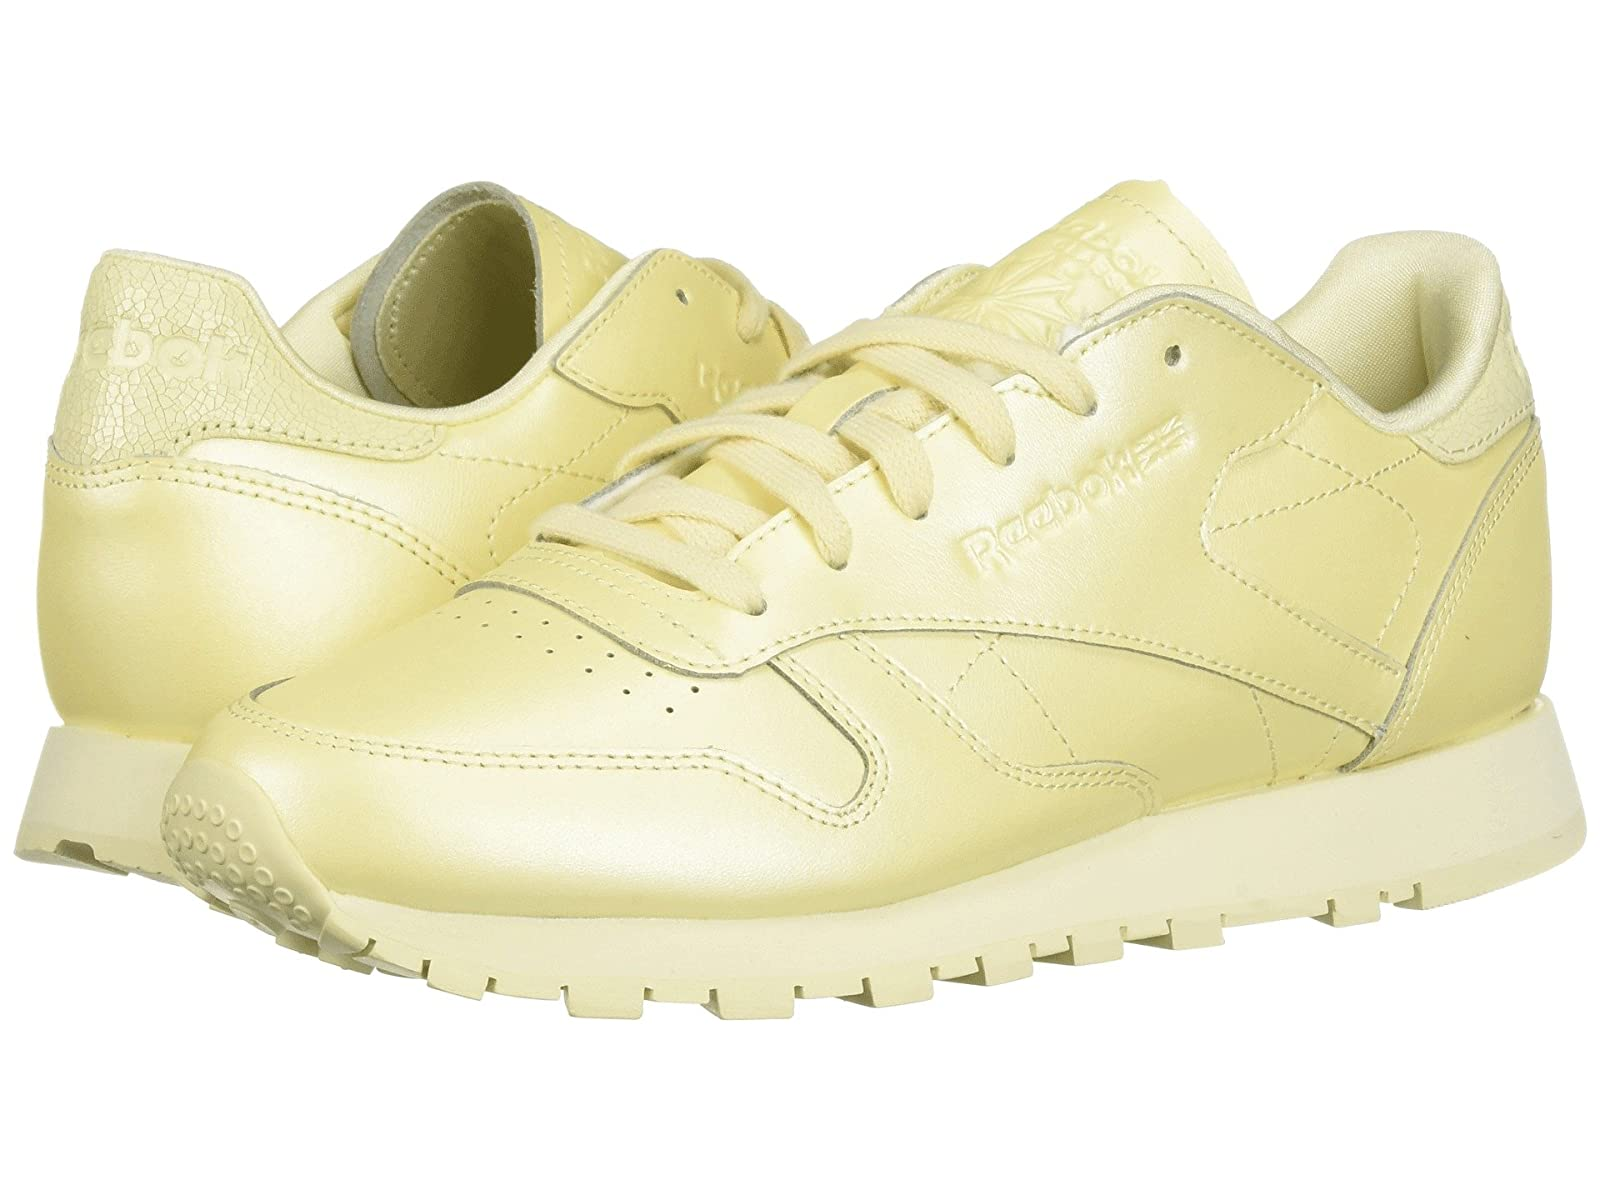 Reebok Lifestyle Classic LeatherAtmospheric grades have affordable shoes